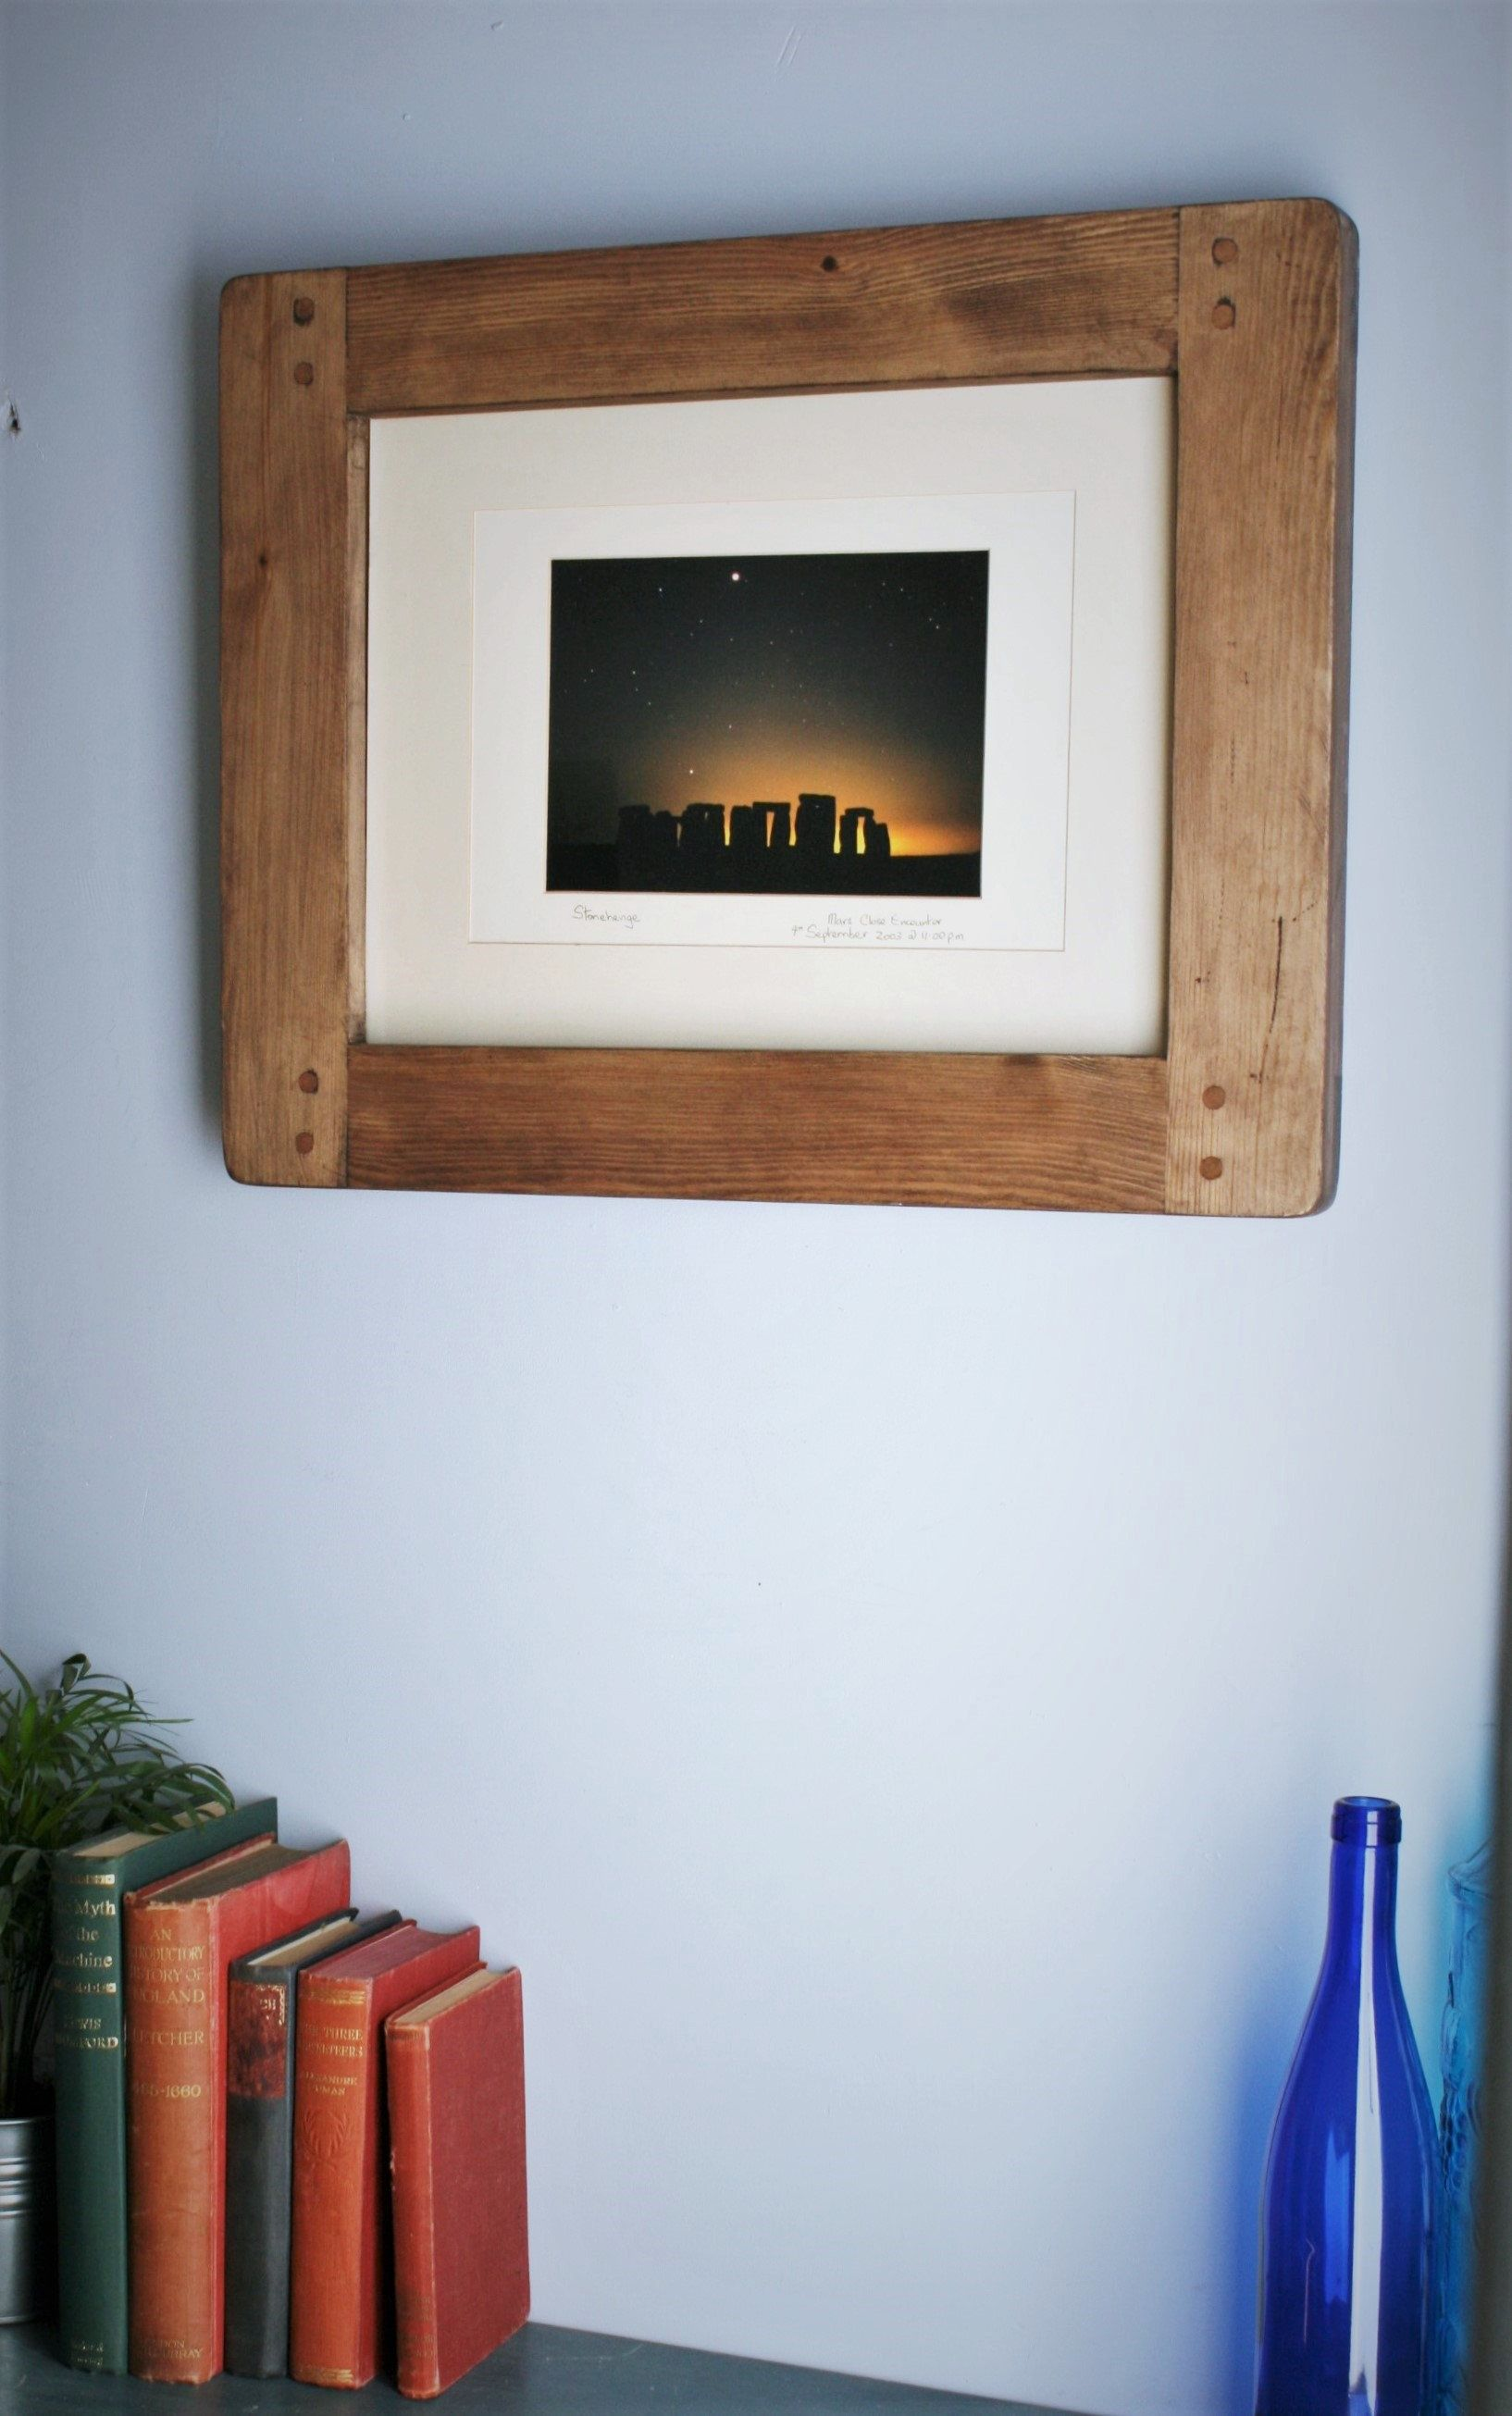 Wooden Frame For Photo Picture 12 X 16 Inch Sustainable Modern Rustic Natural Wood Dark Frame Portrait Landscape Custom Handmade In Uk Rustic Wooden Furniture Picture Frame Designs Custom Picture Frame